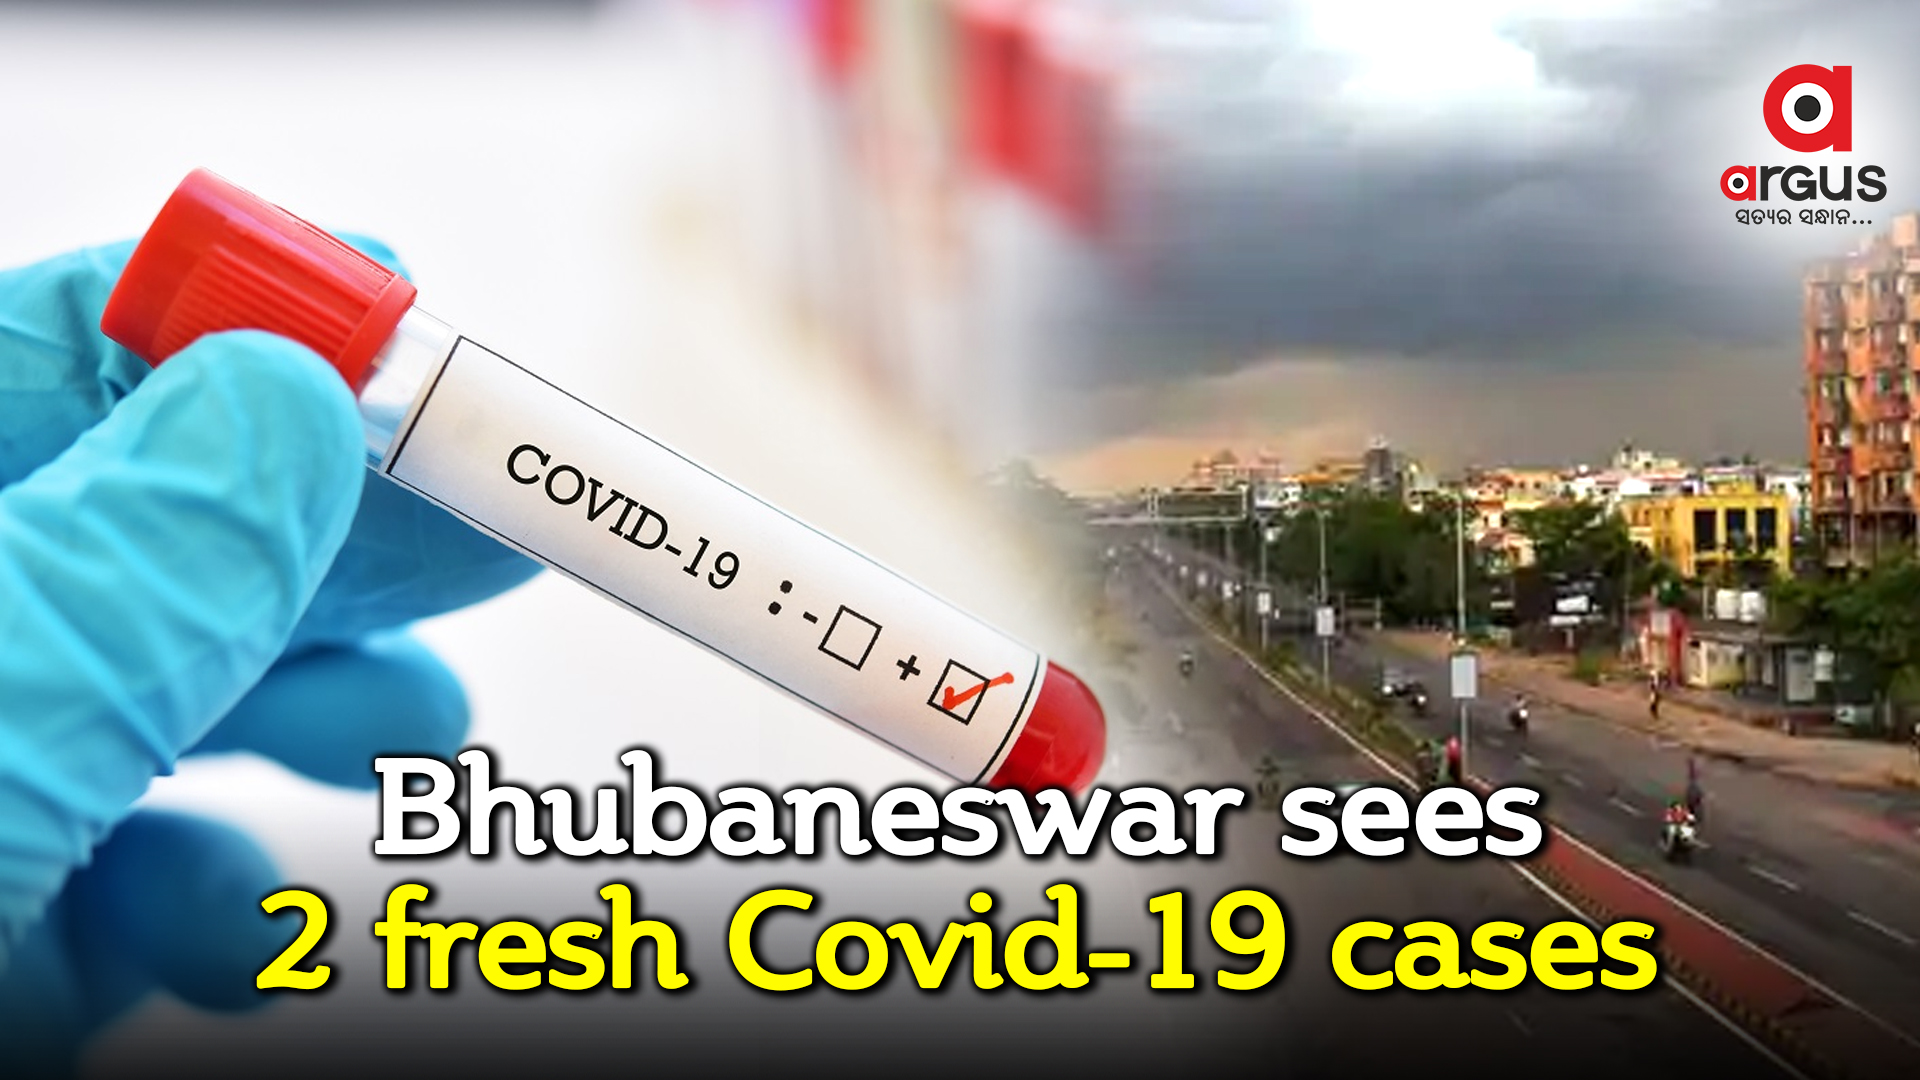 Bhubaneswar reports 2 new Covid-19 cases, 10 recoveries